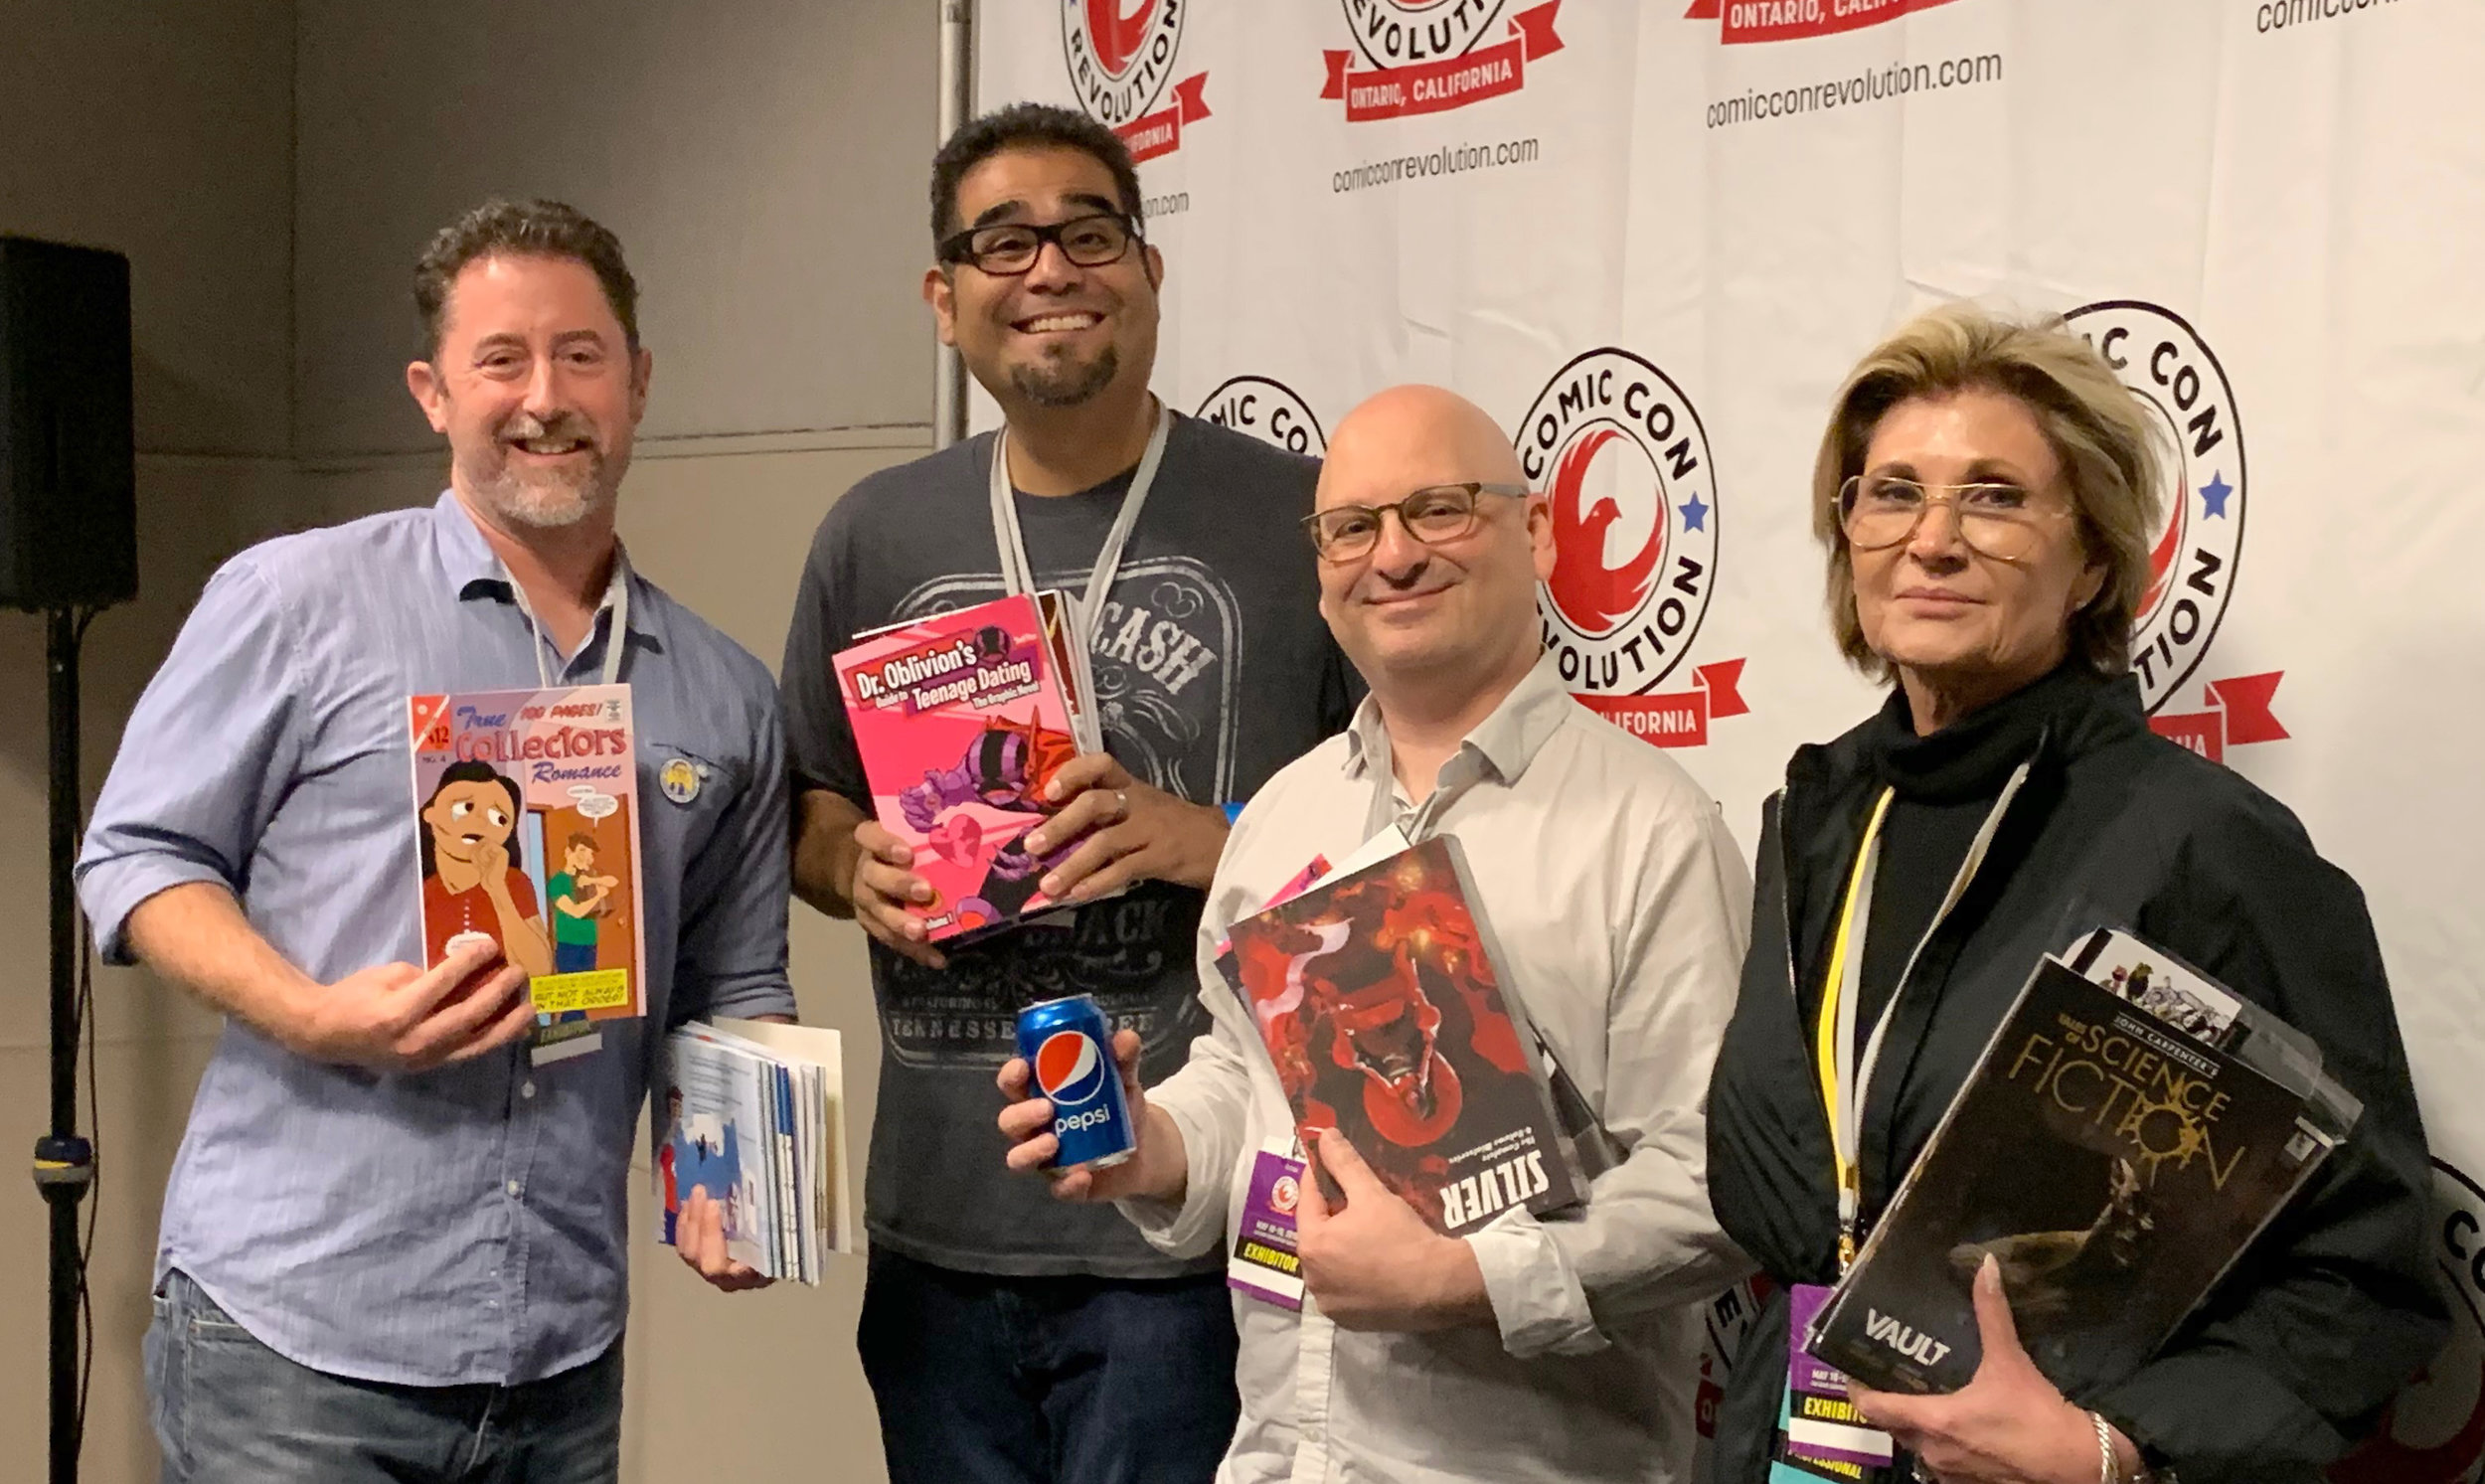 Eddie DeAngelini (self-publishing the comic Collectors), Jeff Piña (self-publishing, independent publishing), Stephan Franck (self-publishing under Dark Planet Comics), Sandy King Carpenter (self-publishing under Storm King Productions)